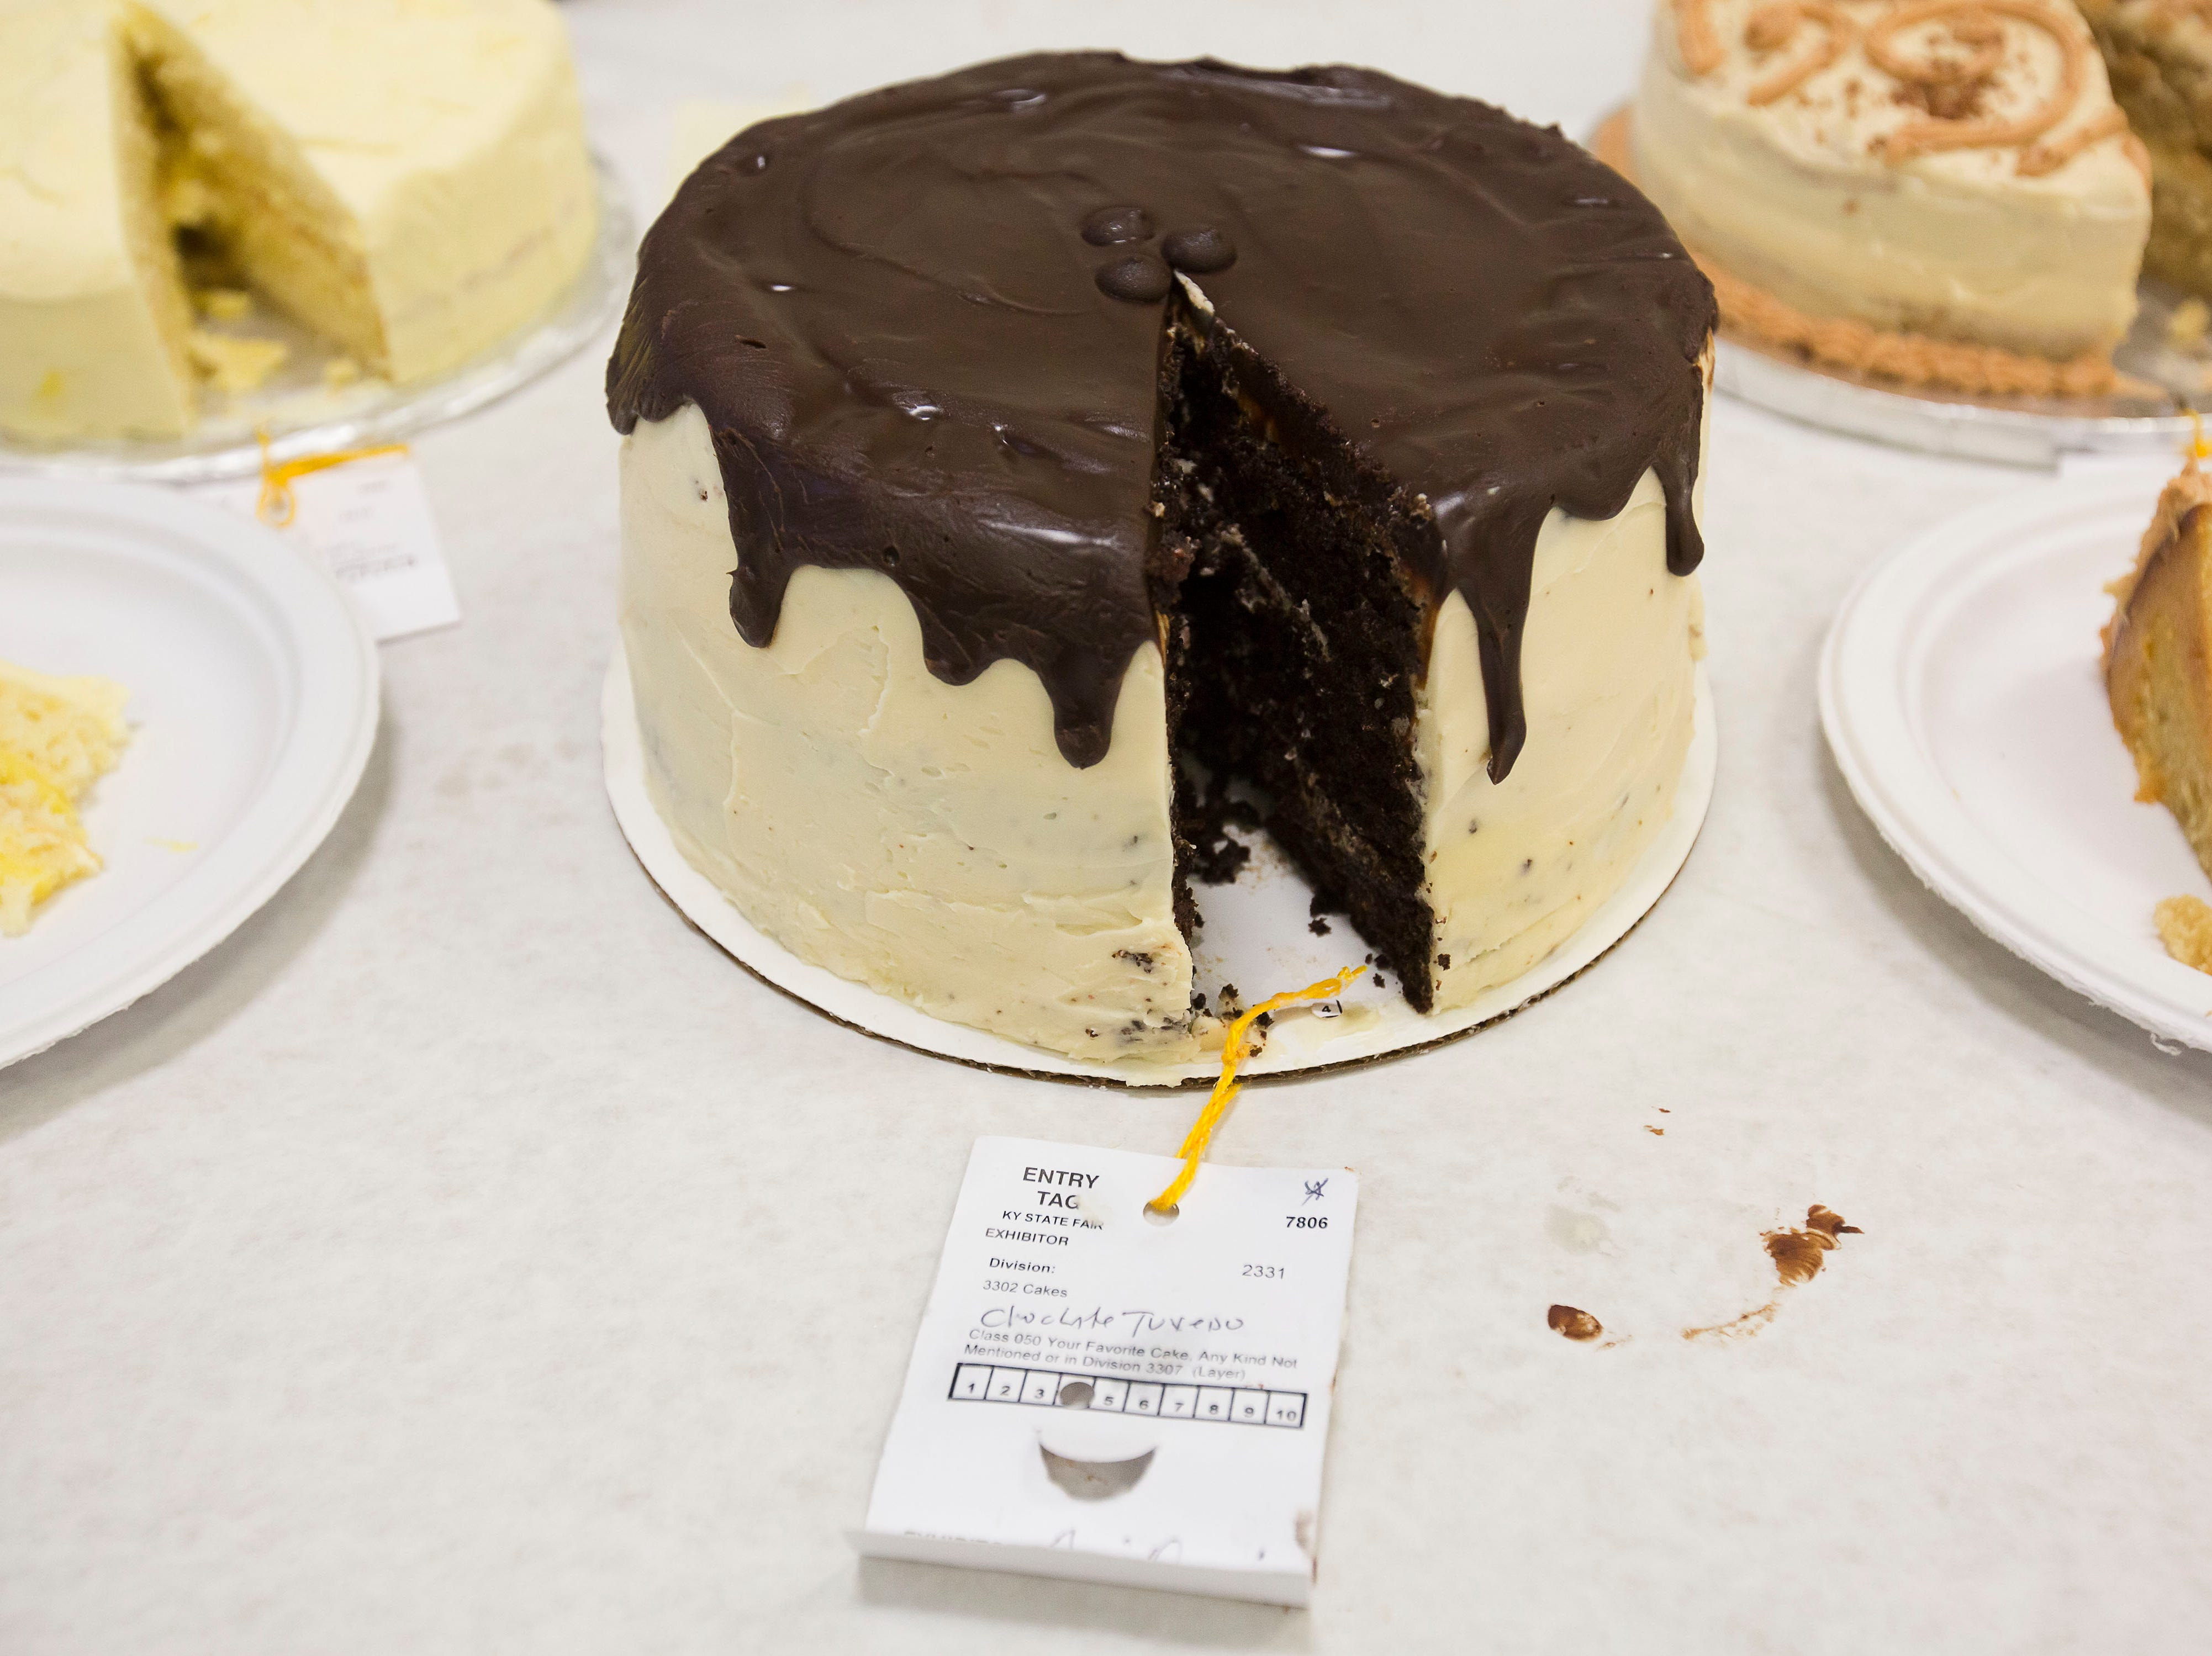 """Tuxedo won fourth place in the category of """"Favorite Cake"""" at Tuesday's taste testing at the Kentucky State Fair on  August 14, 2018."""